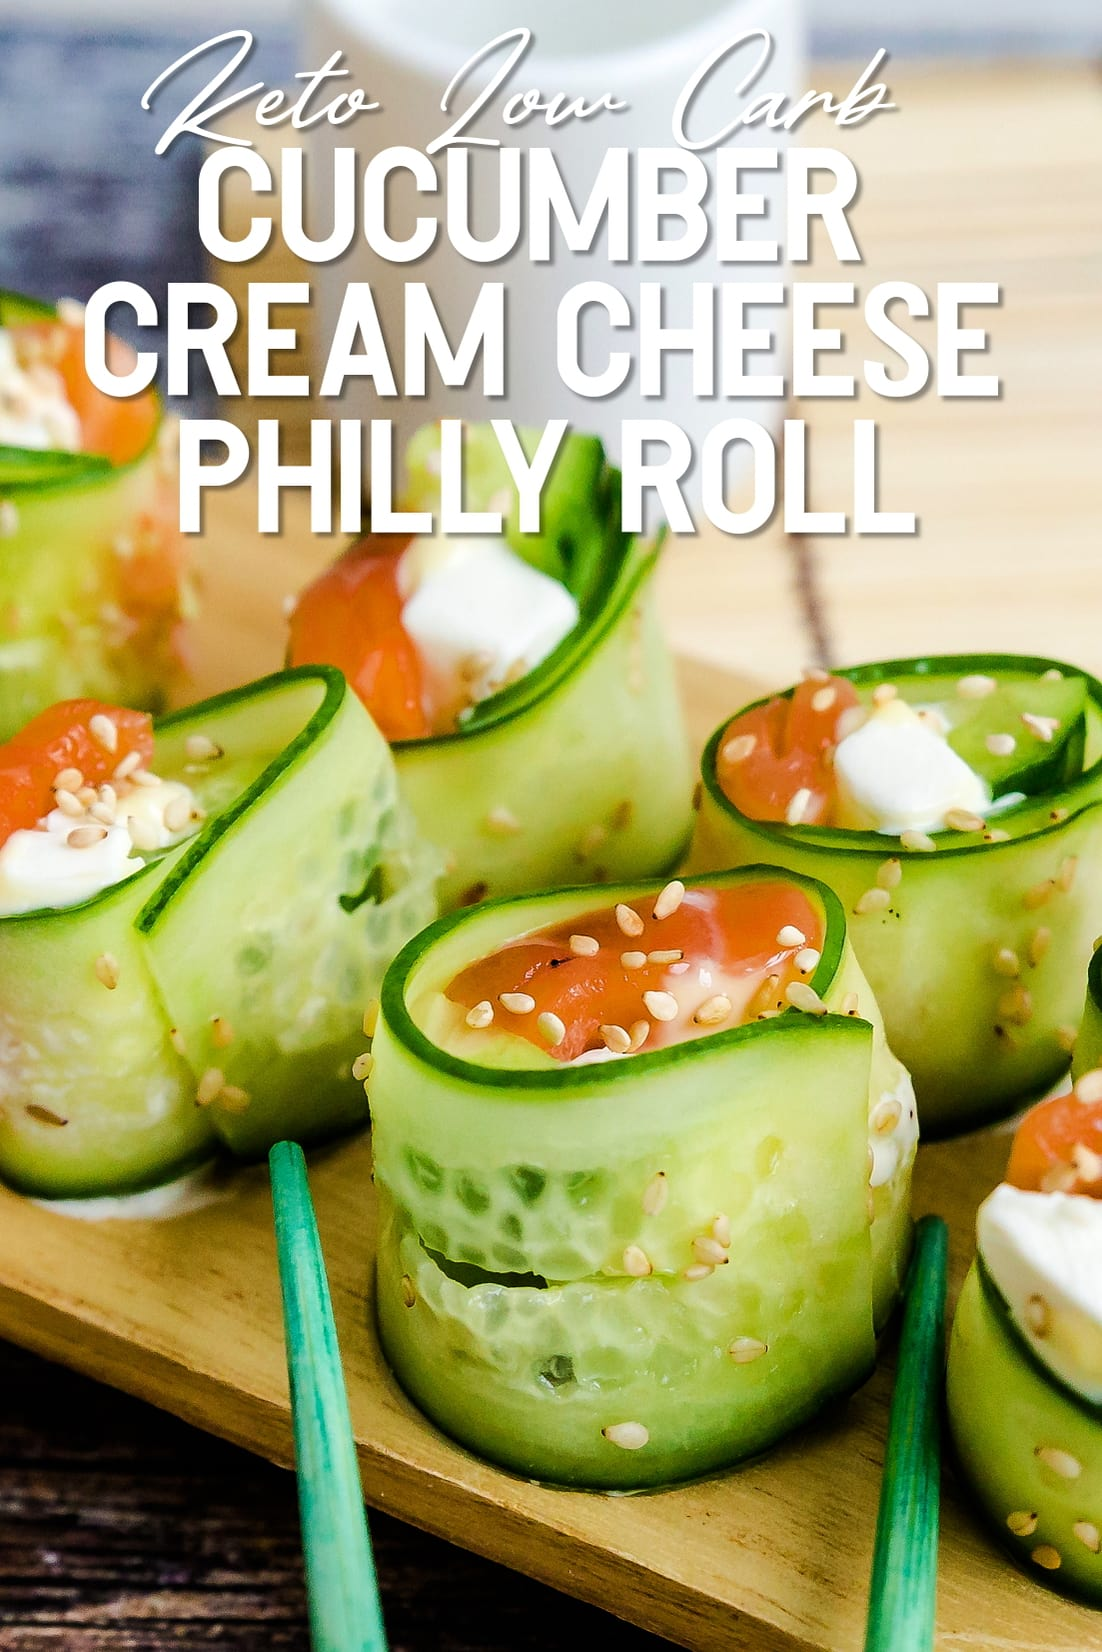 Cucumber Wrapped Cream Cheese Philly Roll with chopsticks